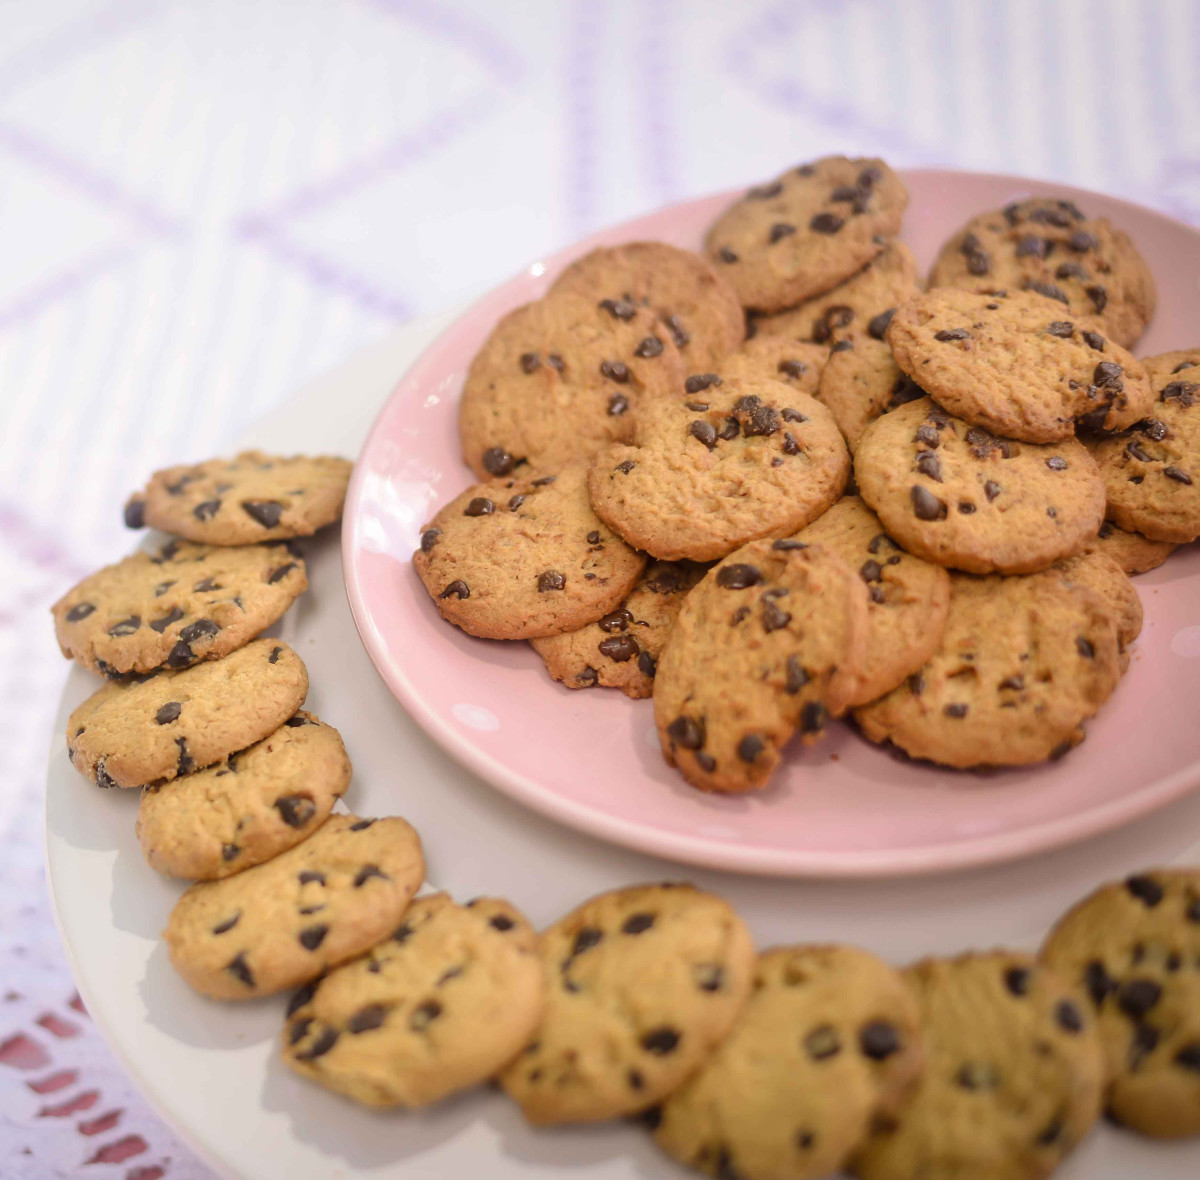 Chocolate chip cookies, invented by Ruth Wakefield, remain a popular favorite cookie today.